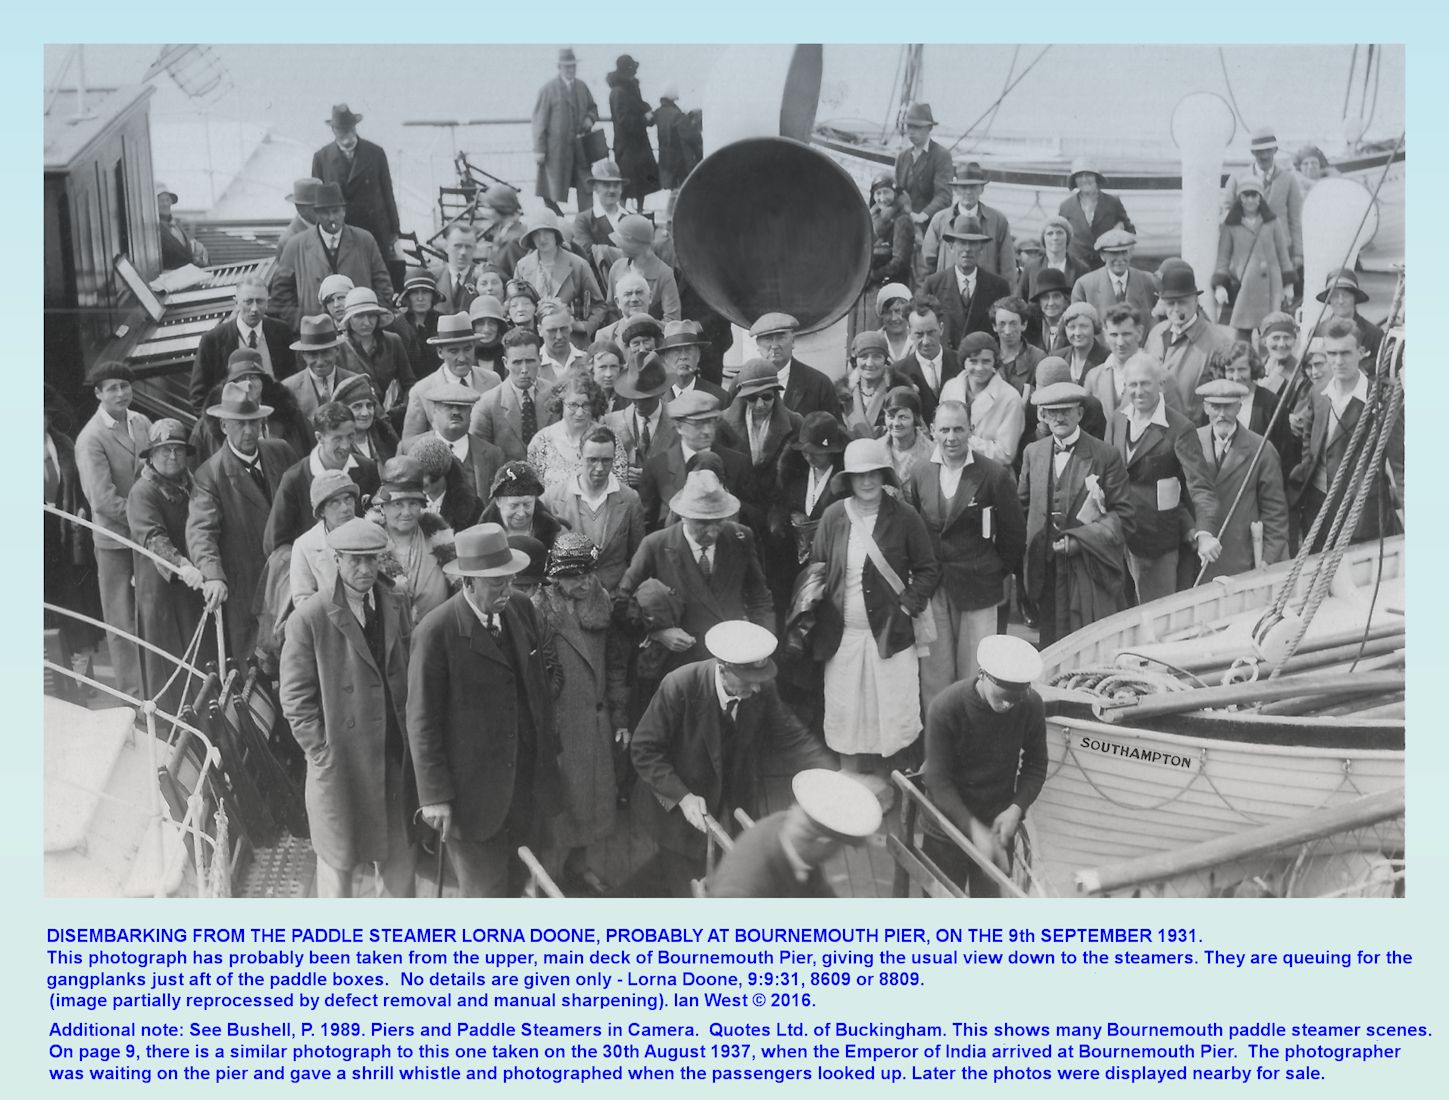 Bournemouth Pier, Dorset, passengers disembarking from the Lorna Doone paddle steamer in 1931